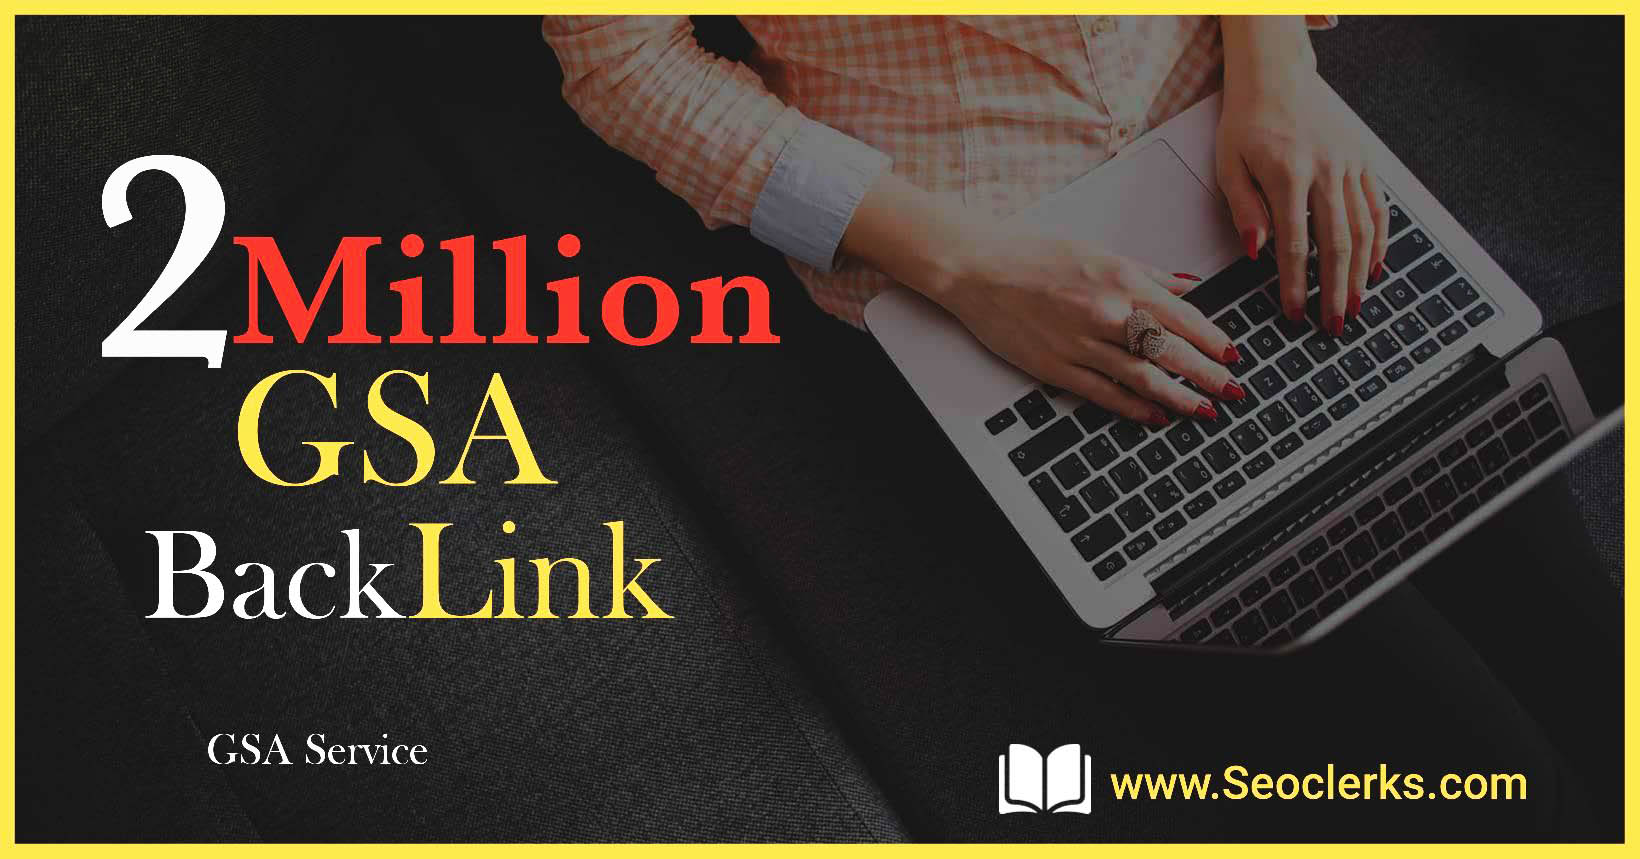 2 Million SEO GSA SER High Quality Backlinks for Google Ranking